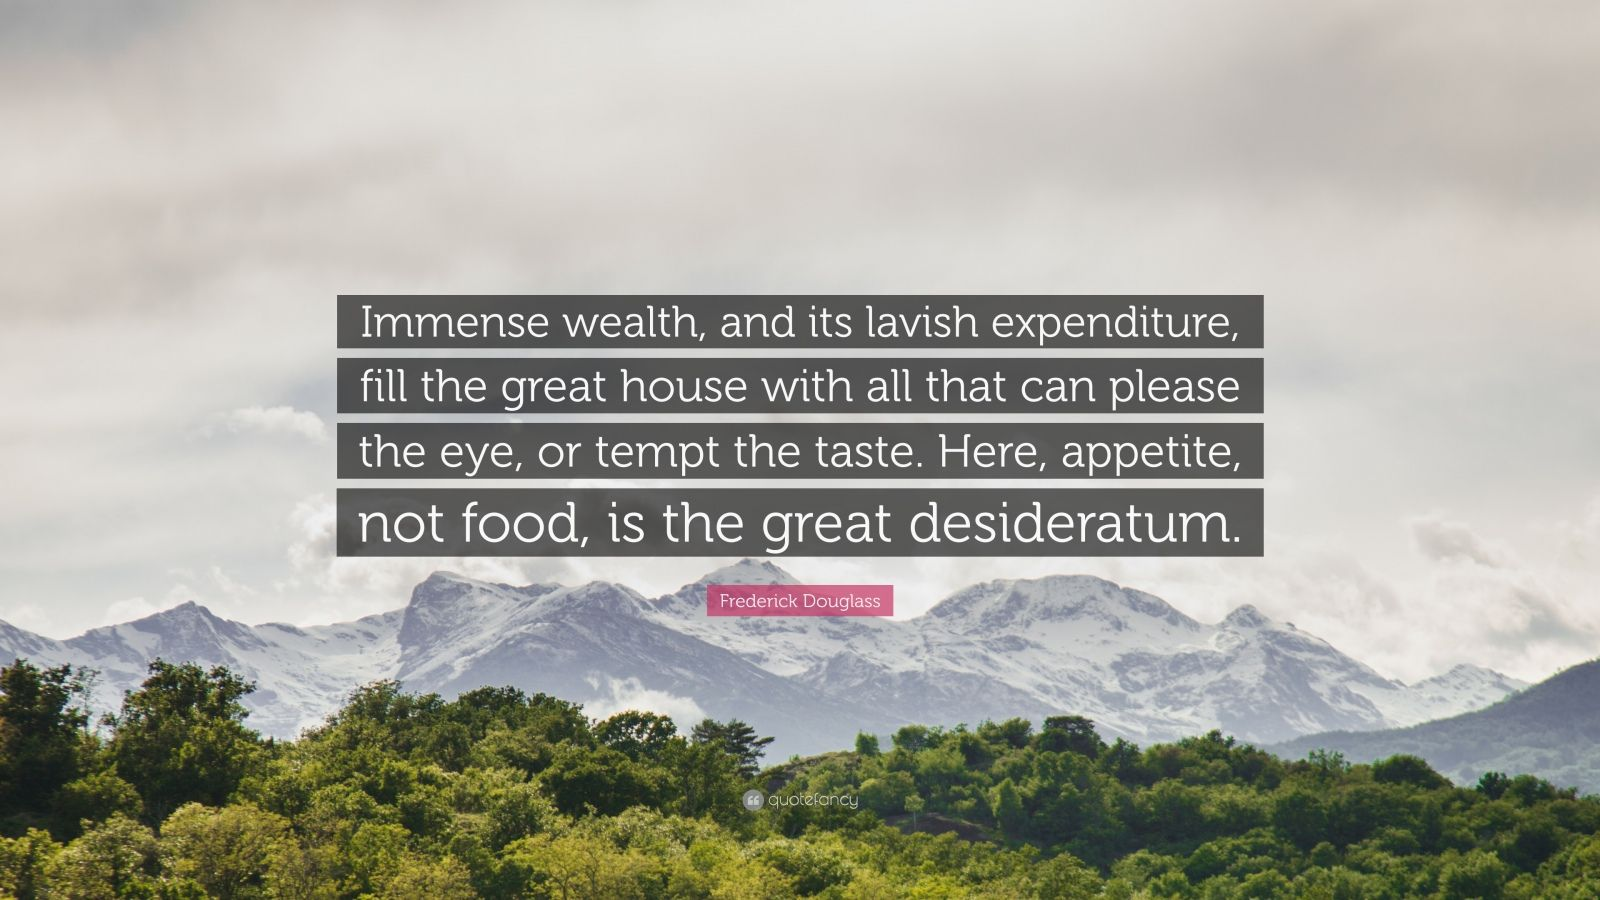 """Frederick Douglass Quote: """"Immense wealth, and its lavish expenditure, fill the great house with all that can please the eye, or tempt the taste. Here, appetite, not food, is the great desideratum."""""""